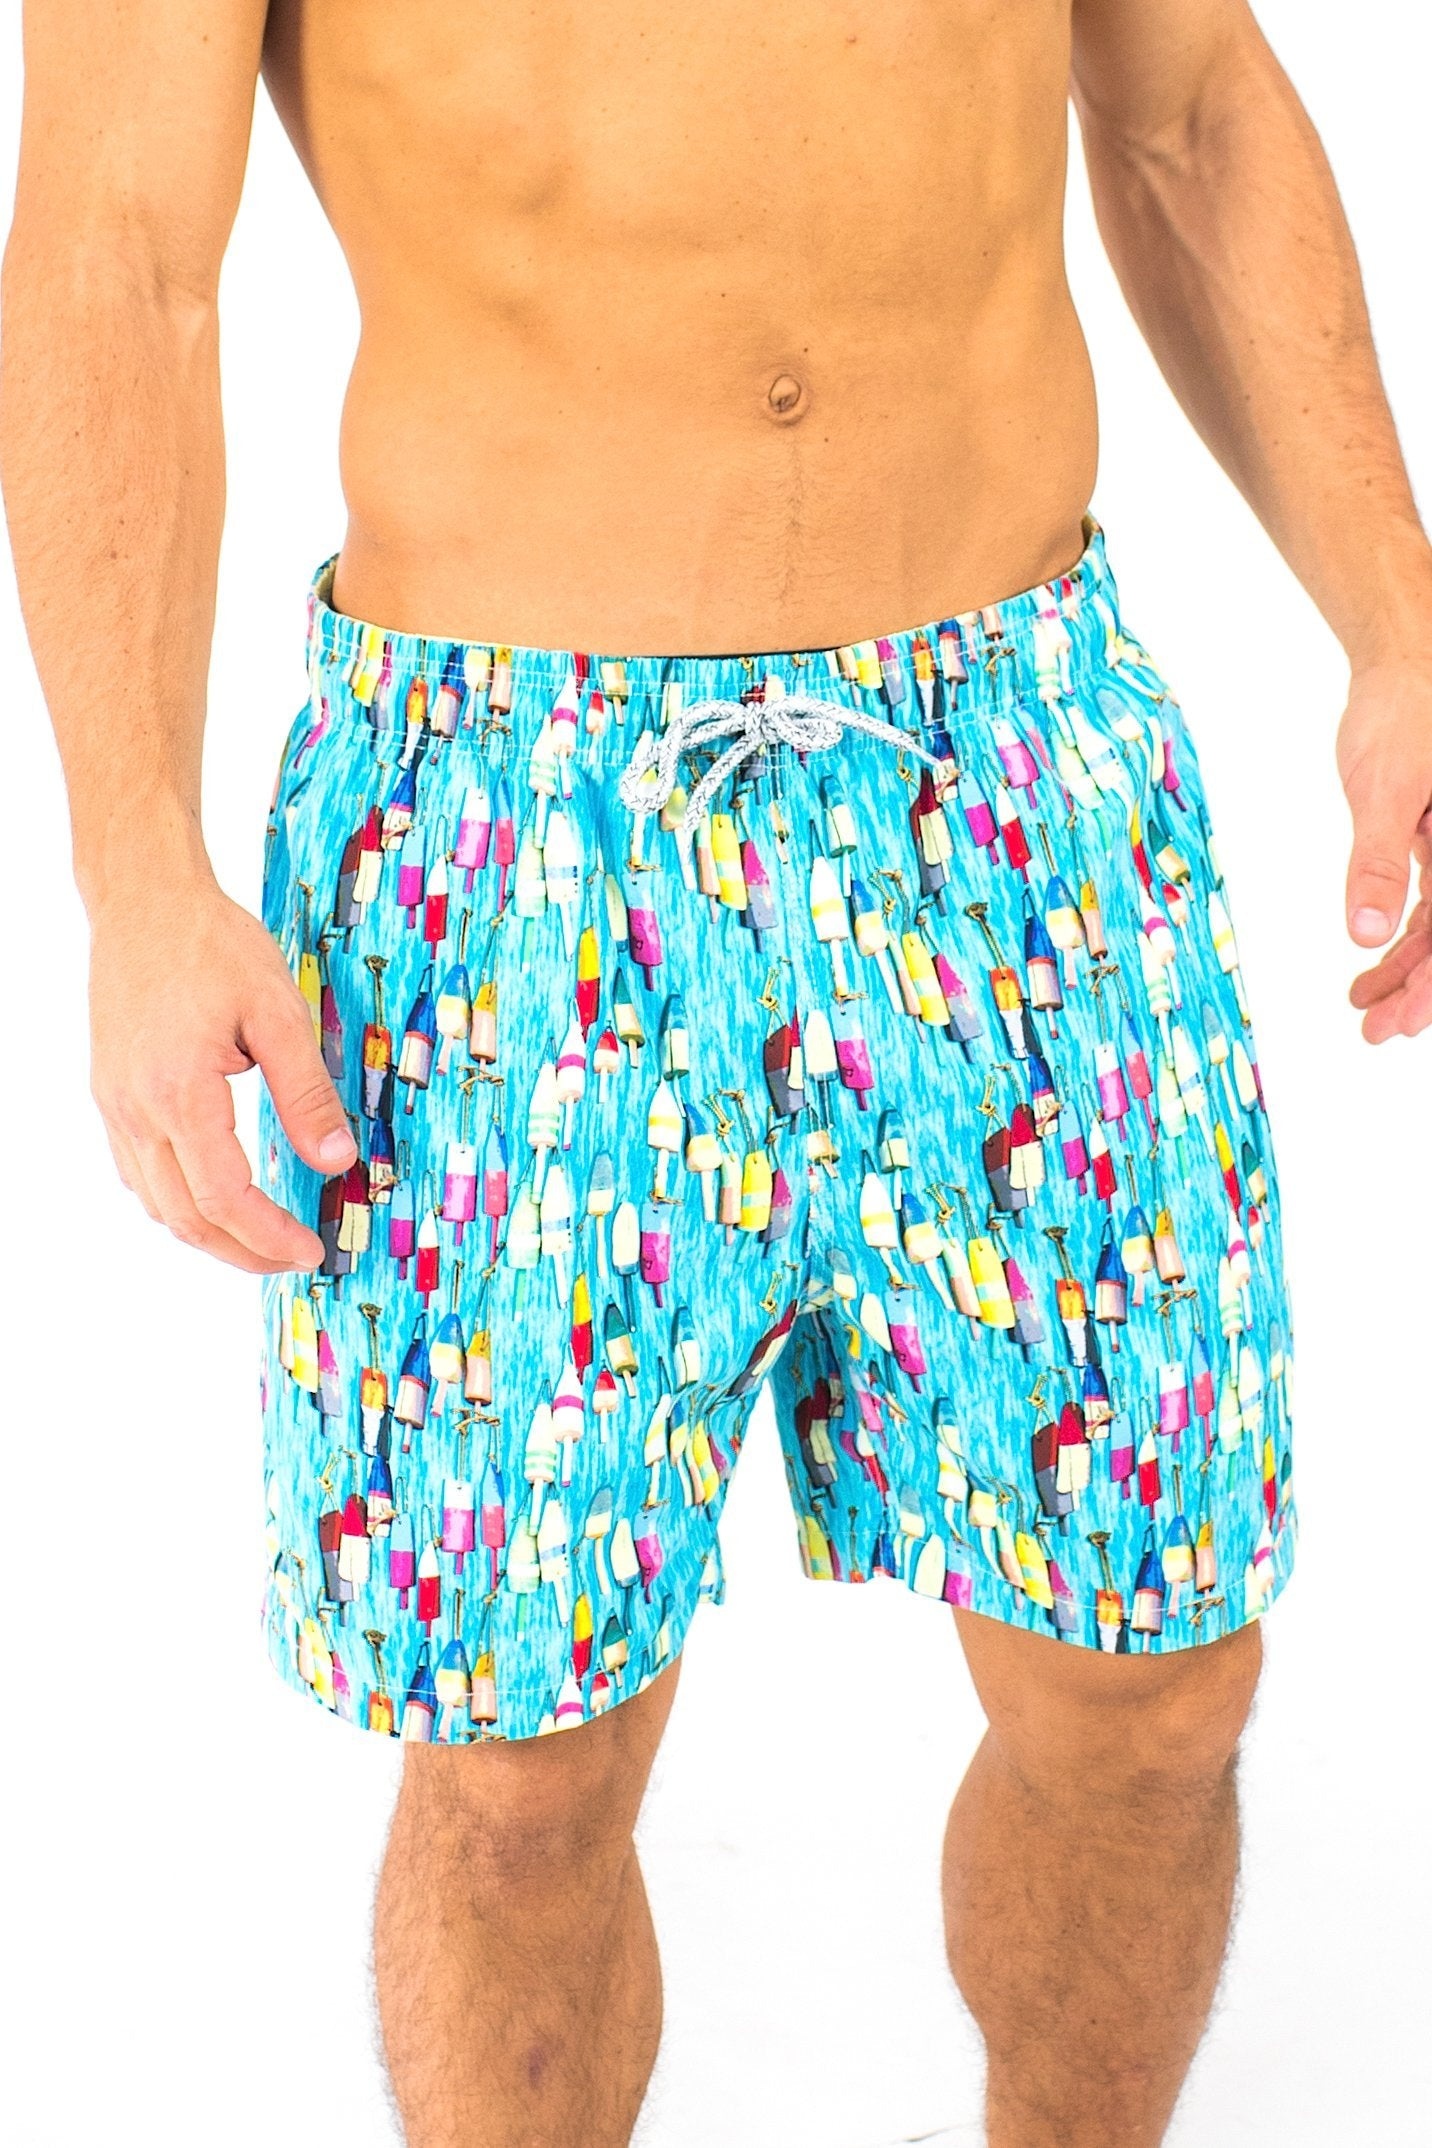 a16a8652cb Michaels Buoys Swim Trunks